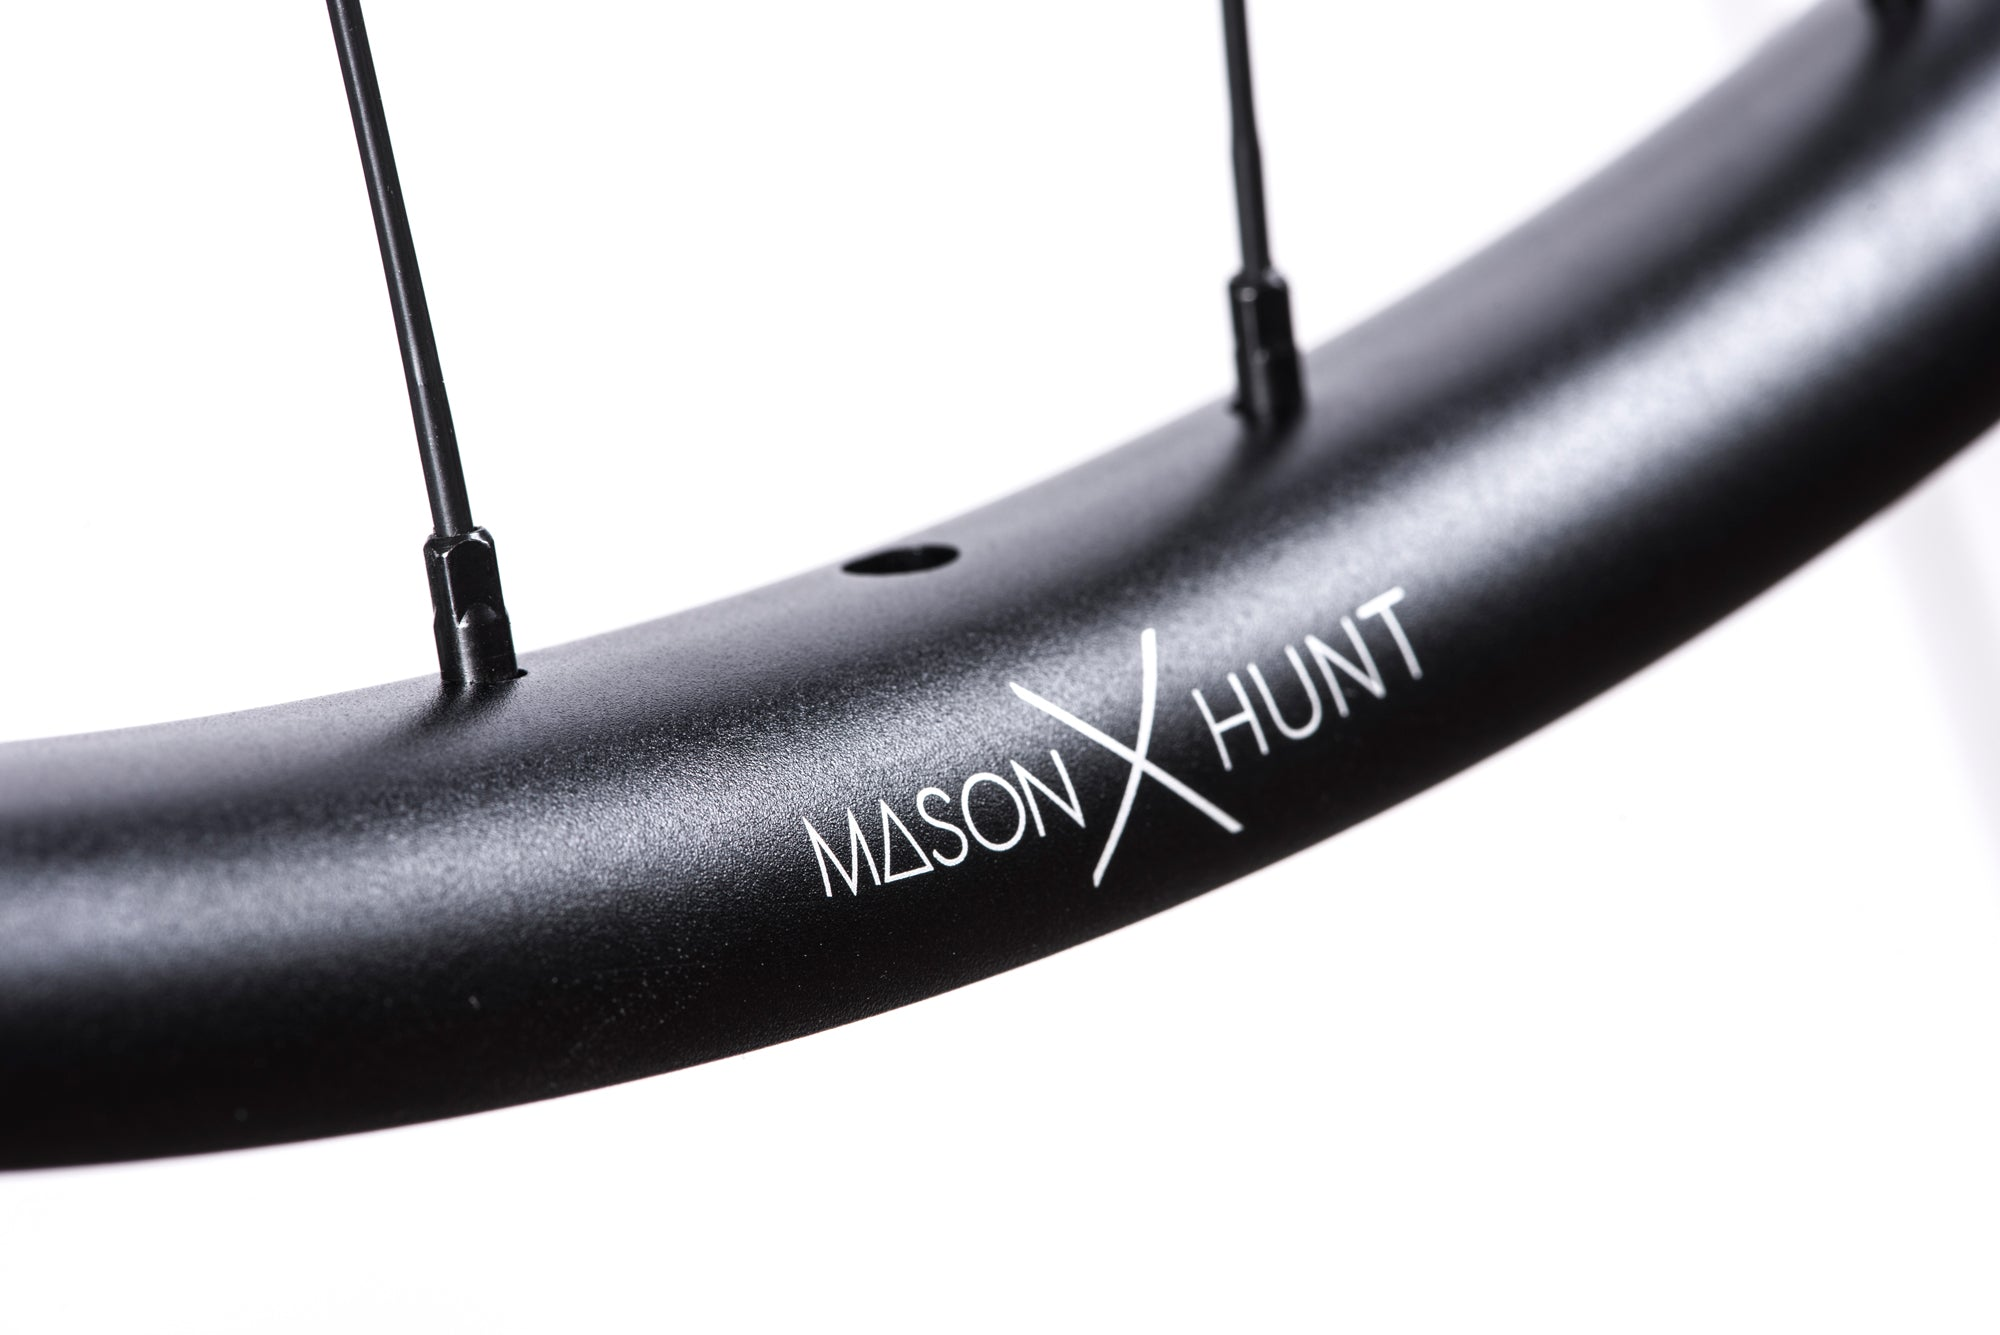 <h1>Nipples</h1><i>We have chosen top of the line, triple butted Pillar Spokes with increased reinforcement at the spoke head. Not only are these spokes extremely lightweight, they are also able to provide a greater degree of elasticity when put under increased stress. The Pillar Spoke Reinforcement (PSR) puts more material at the spoke head, just before the J-Bend to prevent failure in this stress area.</i>